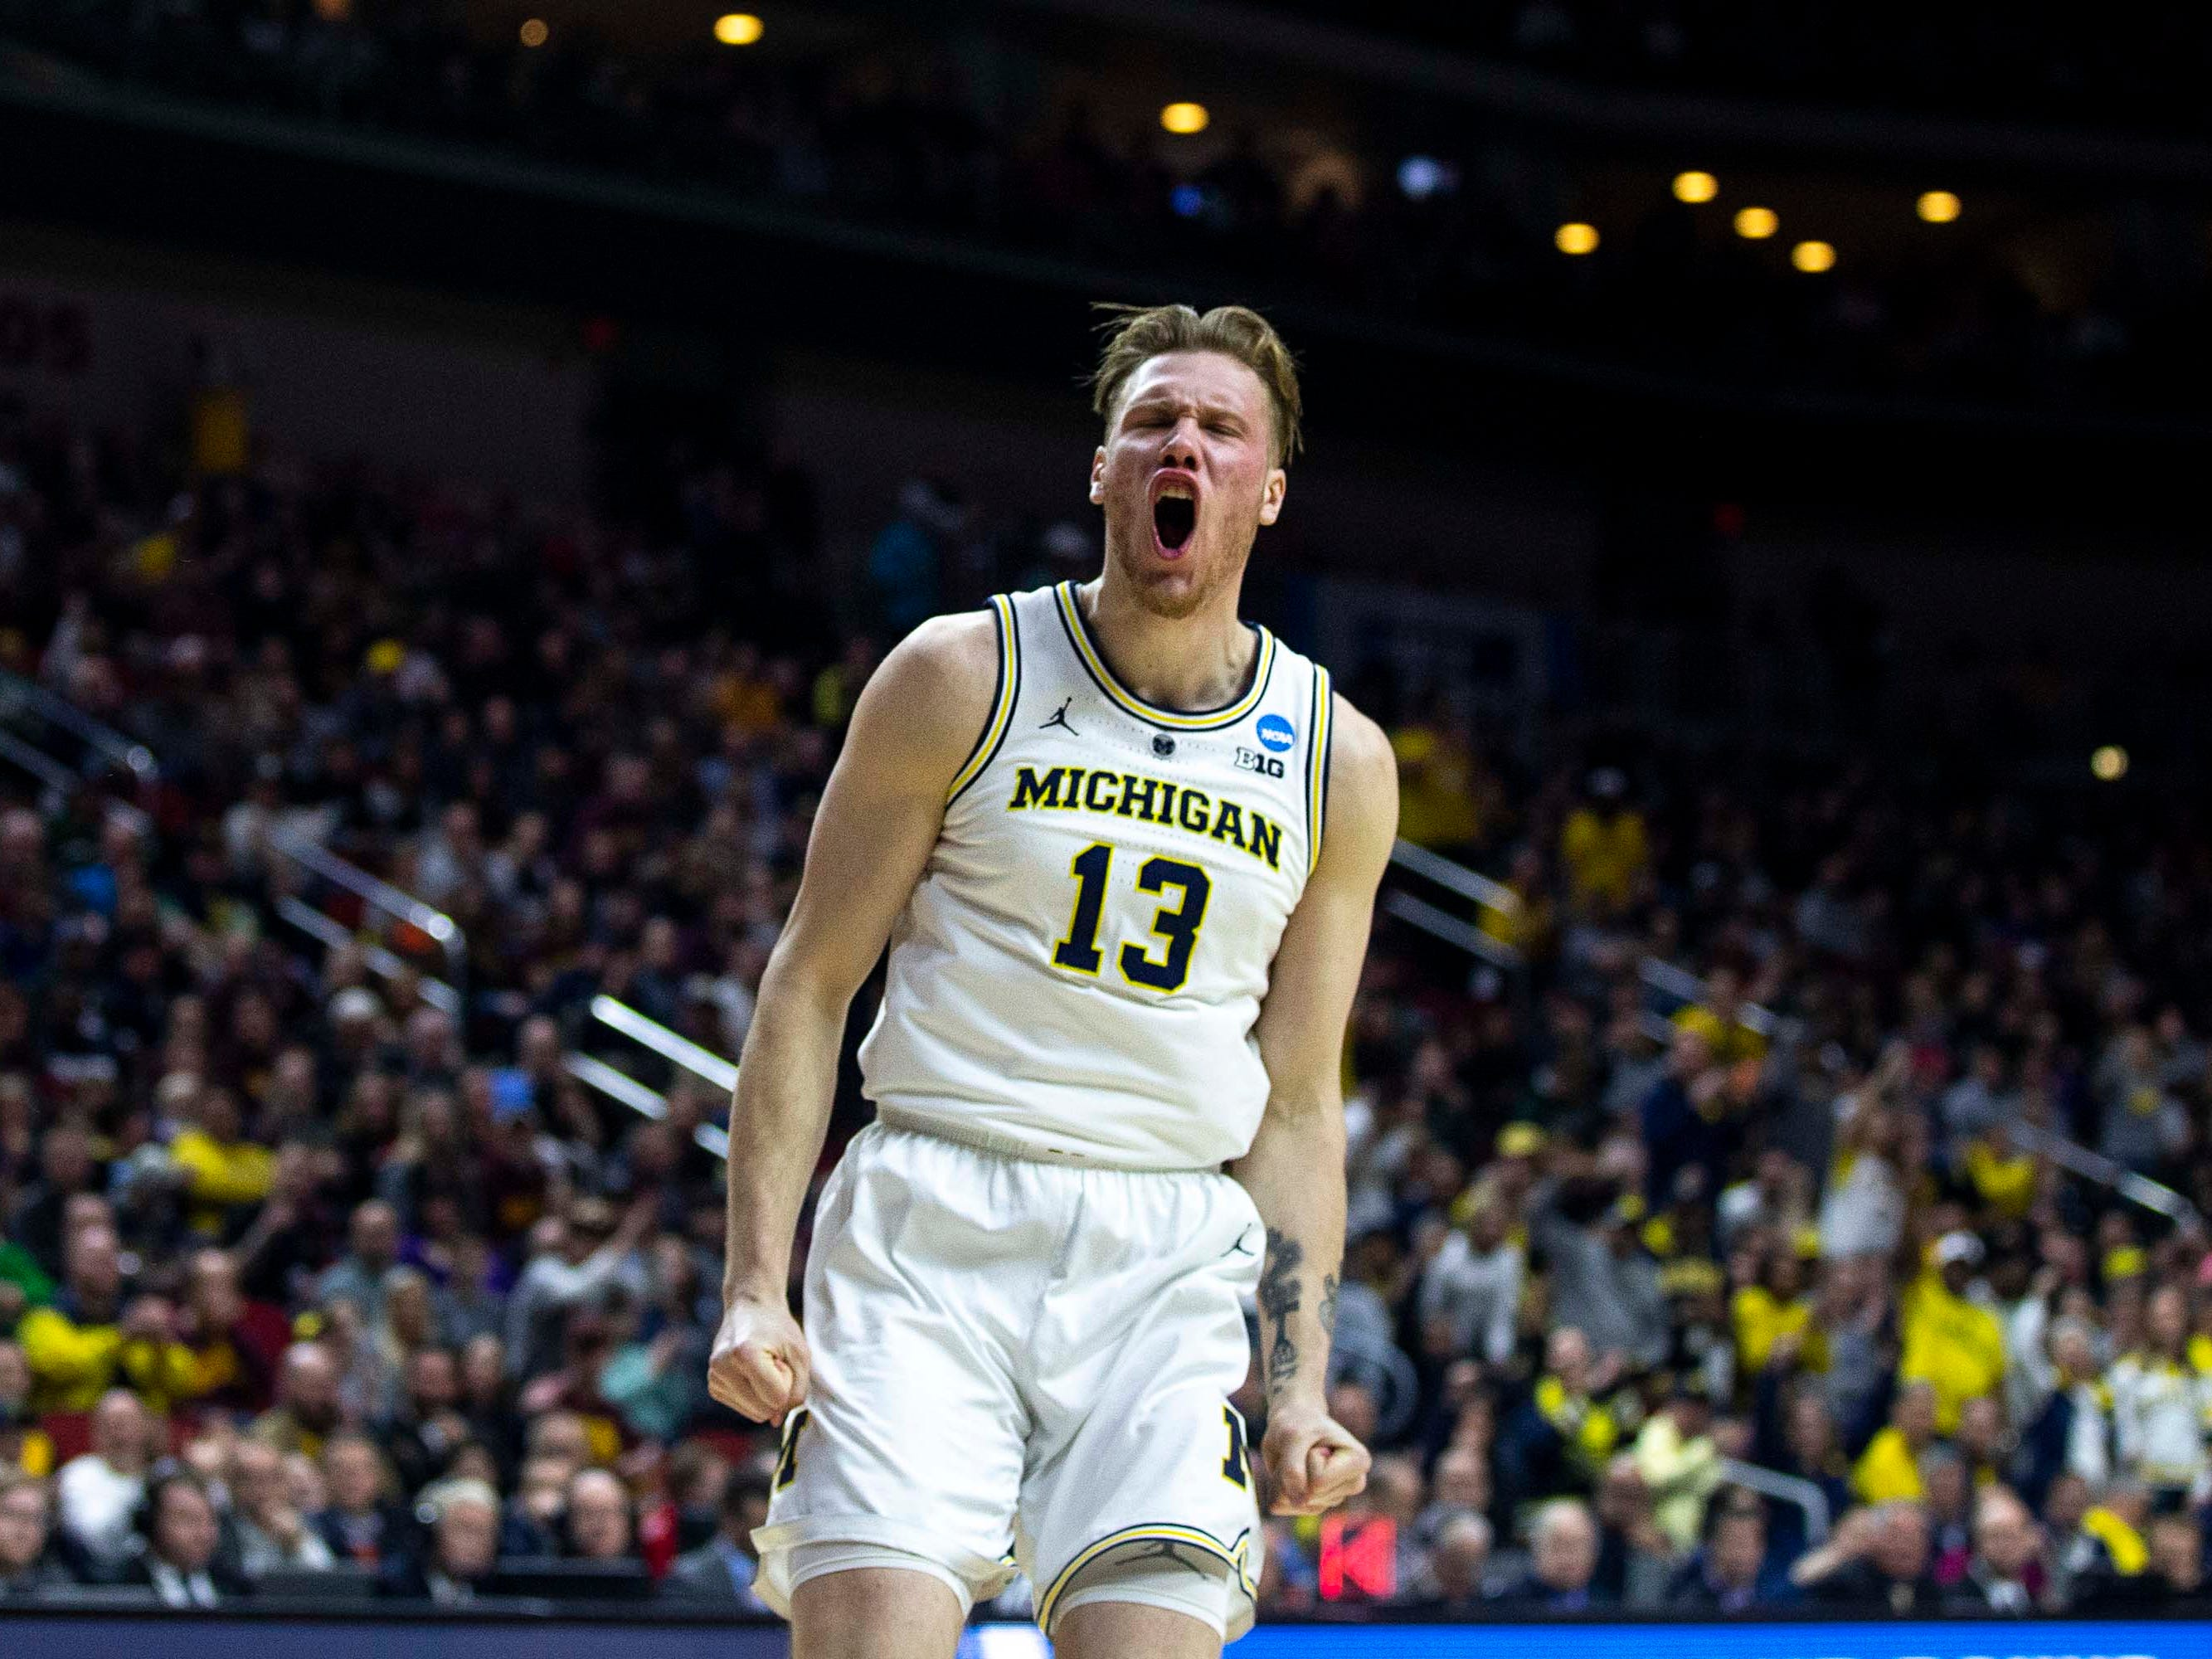 Michigan's Ignas Brazdeikis celebrates after making a dunk during the NCAA Tournament second-round match-up between Michigan and Florida on Saturday, March 23, 2019, in Wells Fargo Arena in Des Moines, Iowa.